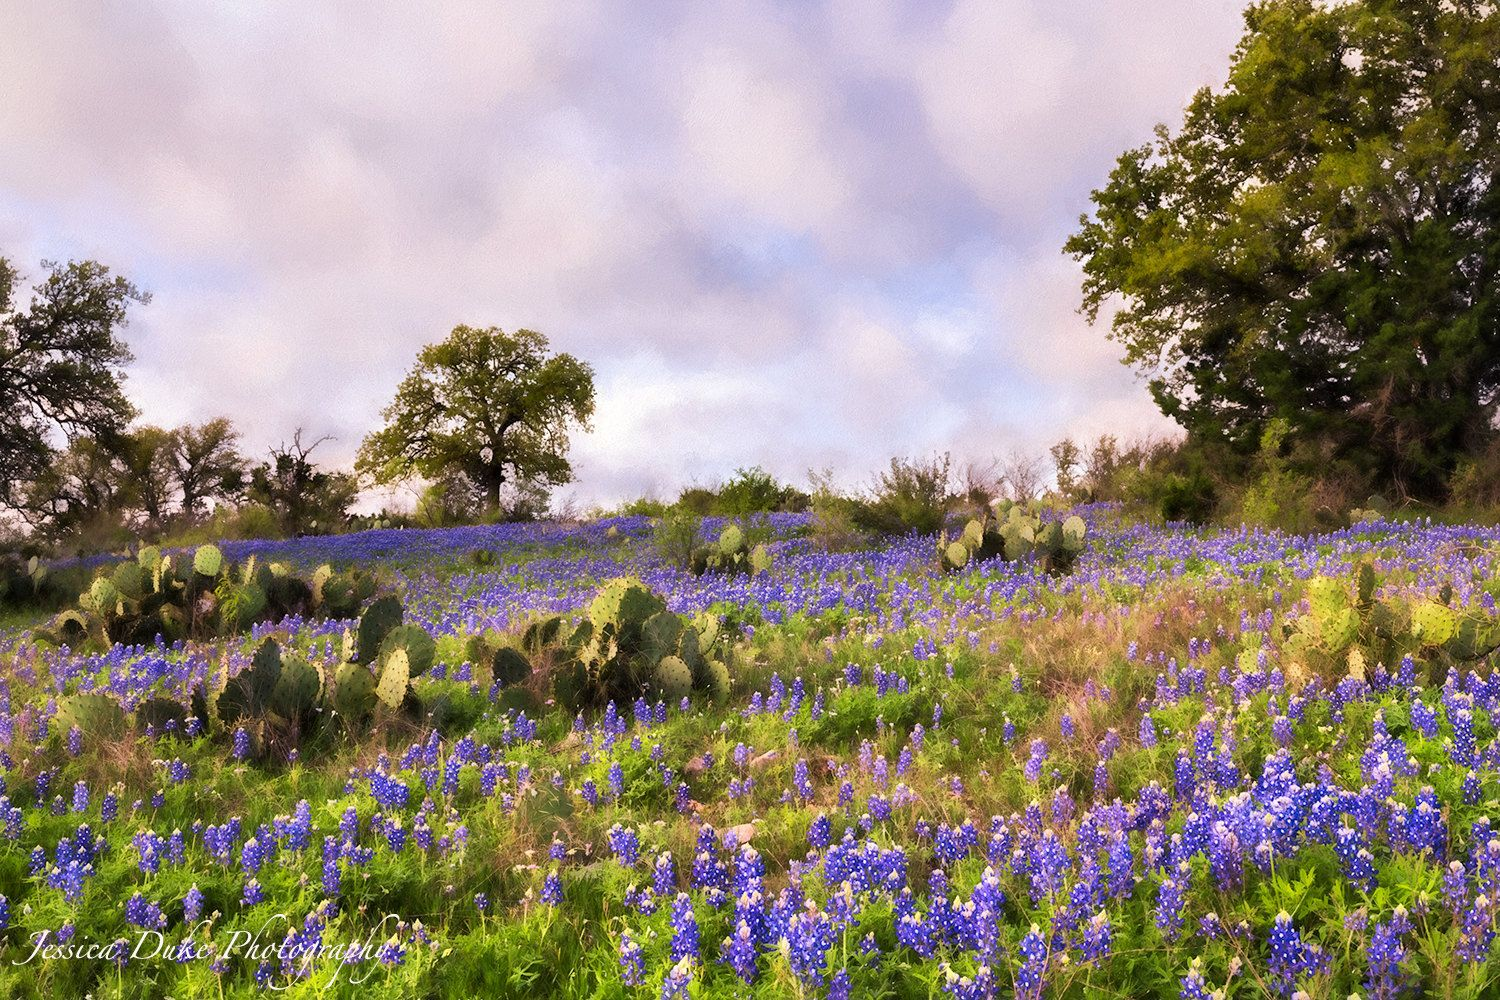 Texas Bluebonnets, Landscape Photography, Flower Photography, Texas Landscape Photography, Fine Art Photography, Nature Photography, Blue by JessDukePhotography on Etsy